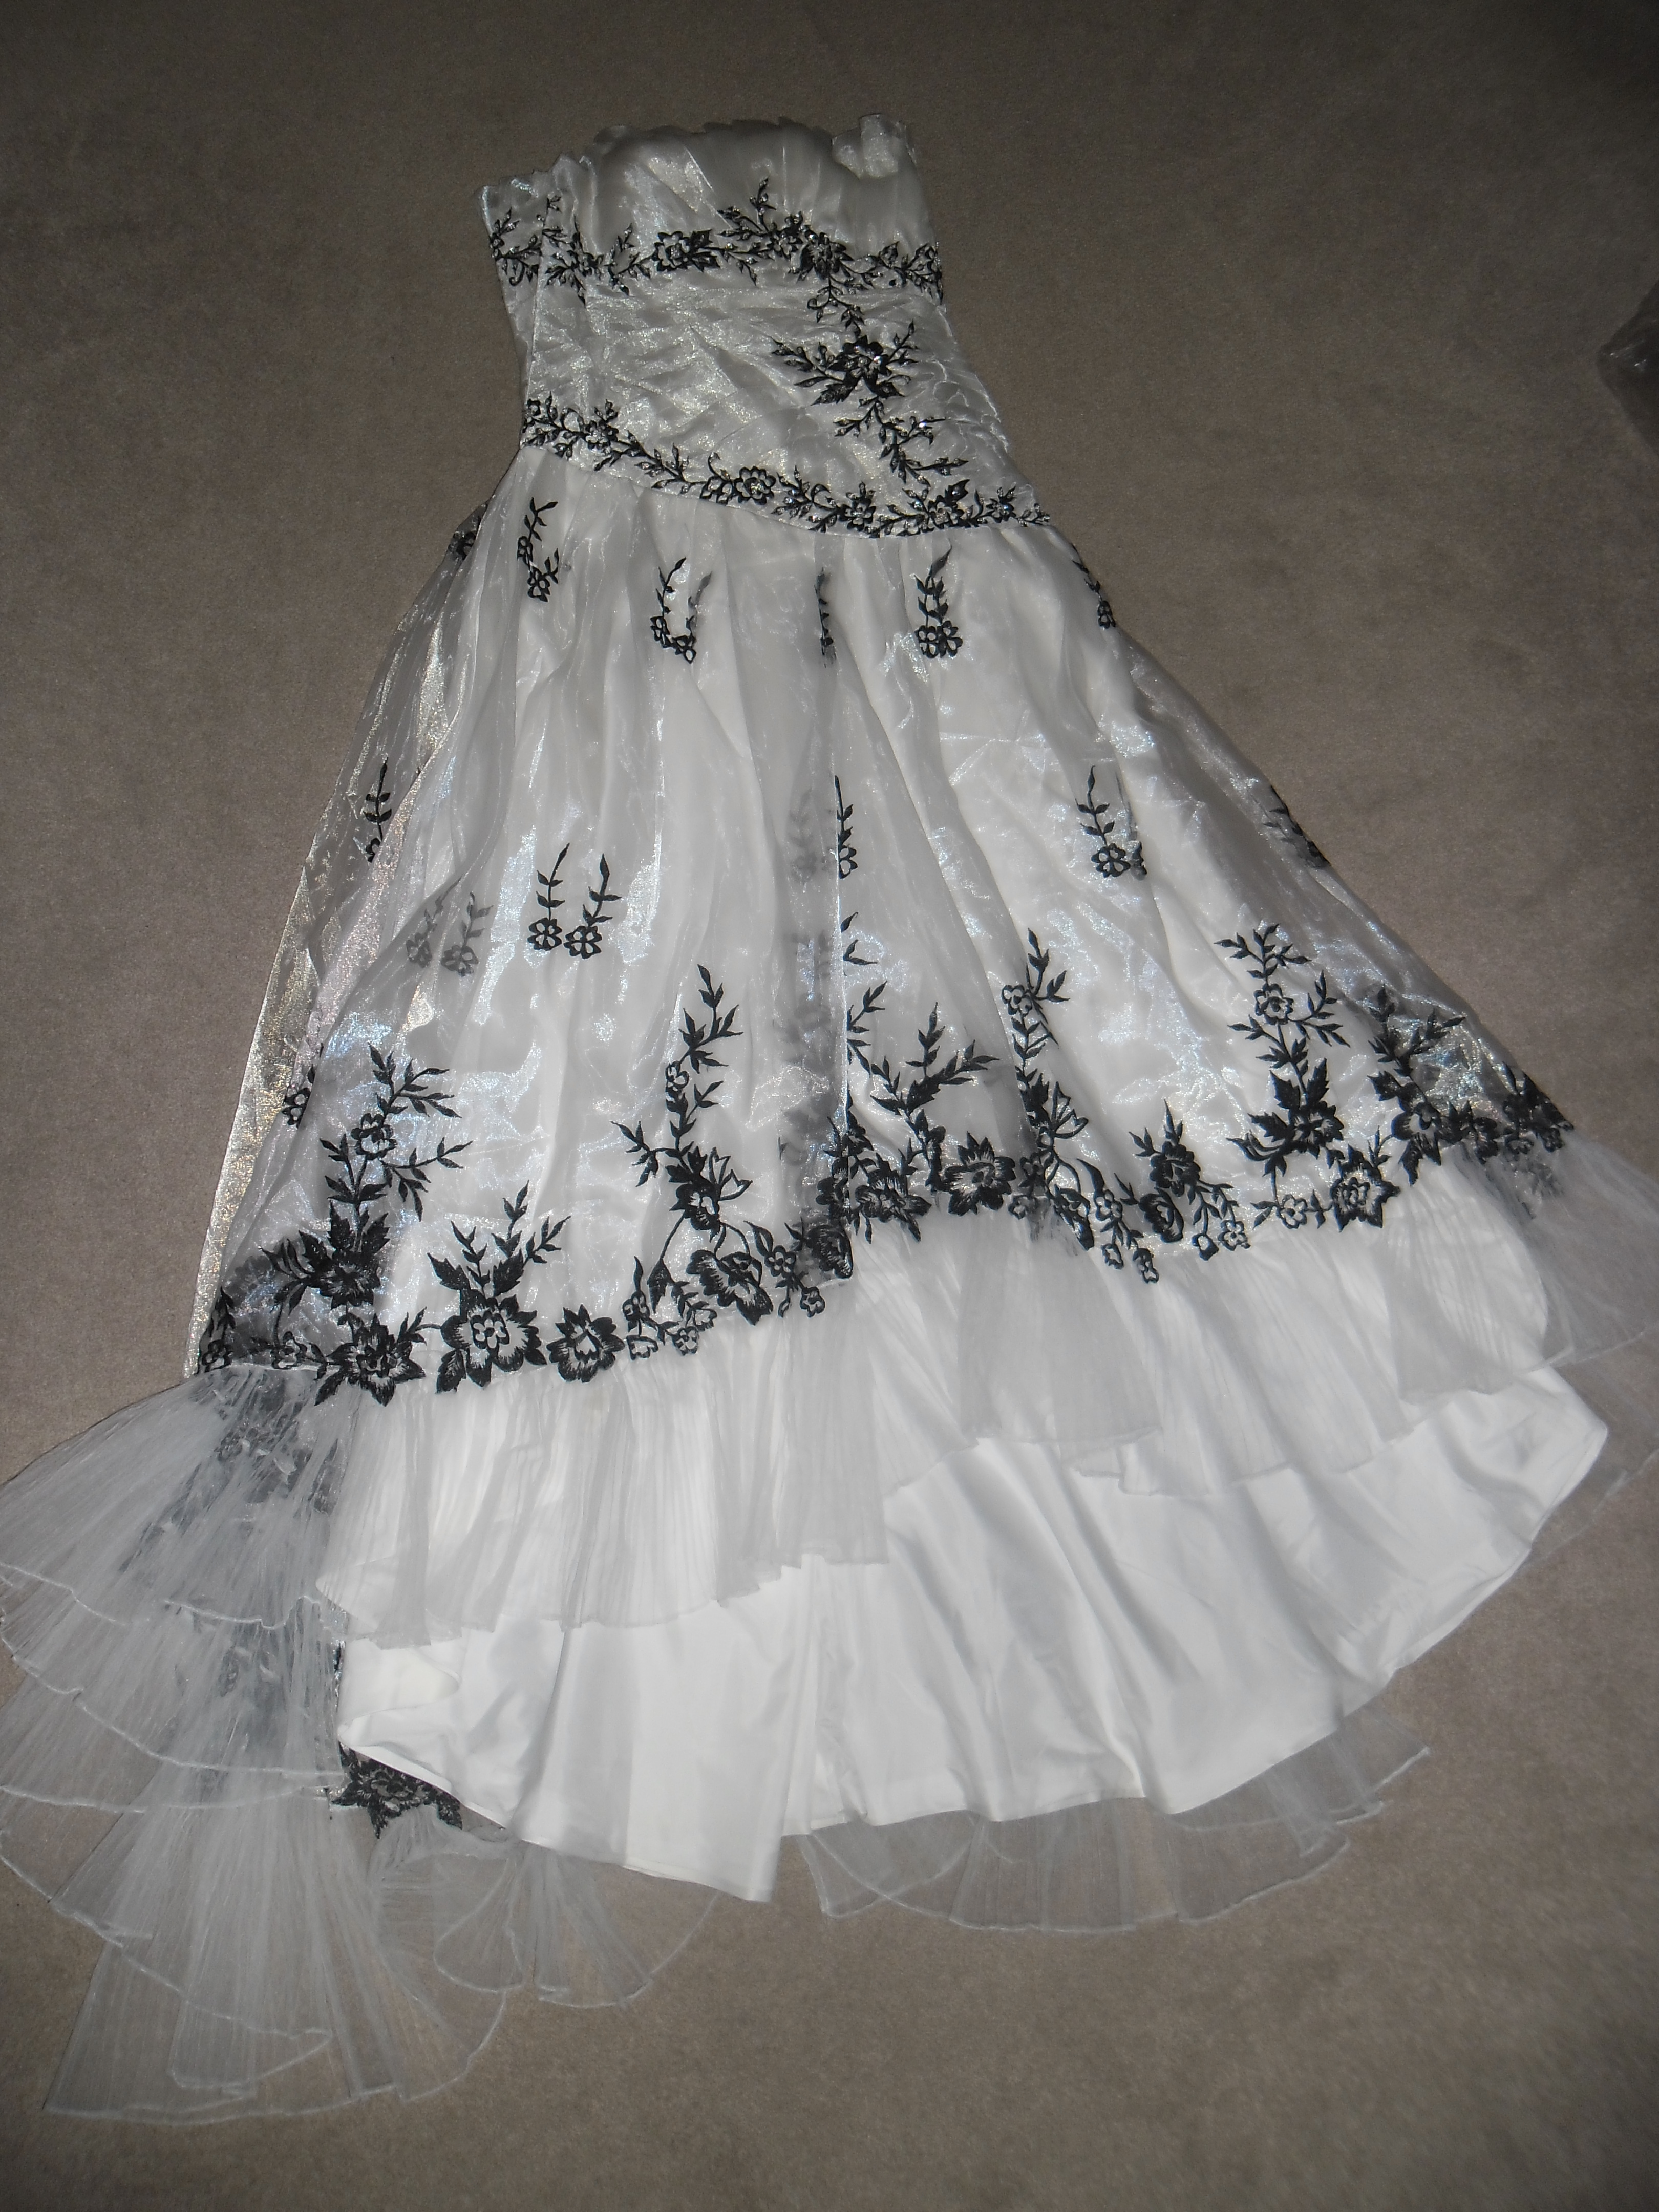 ebay wedding dress Report Inappropriate Content